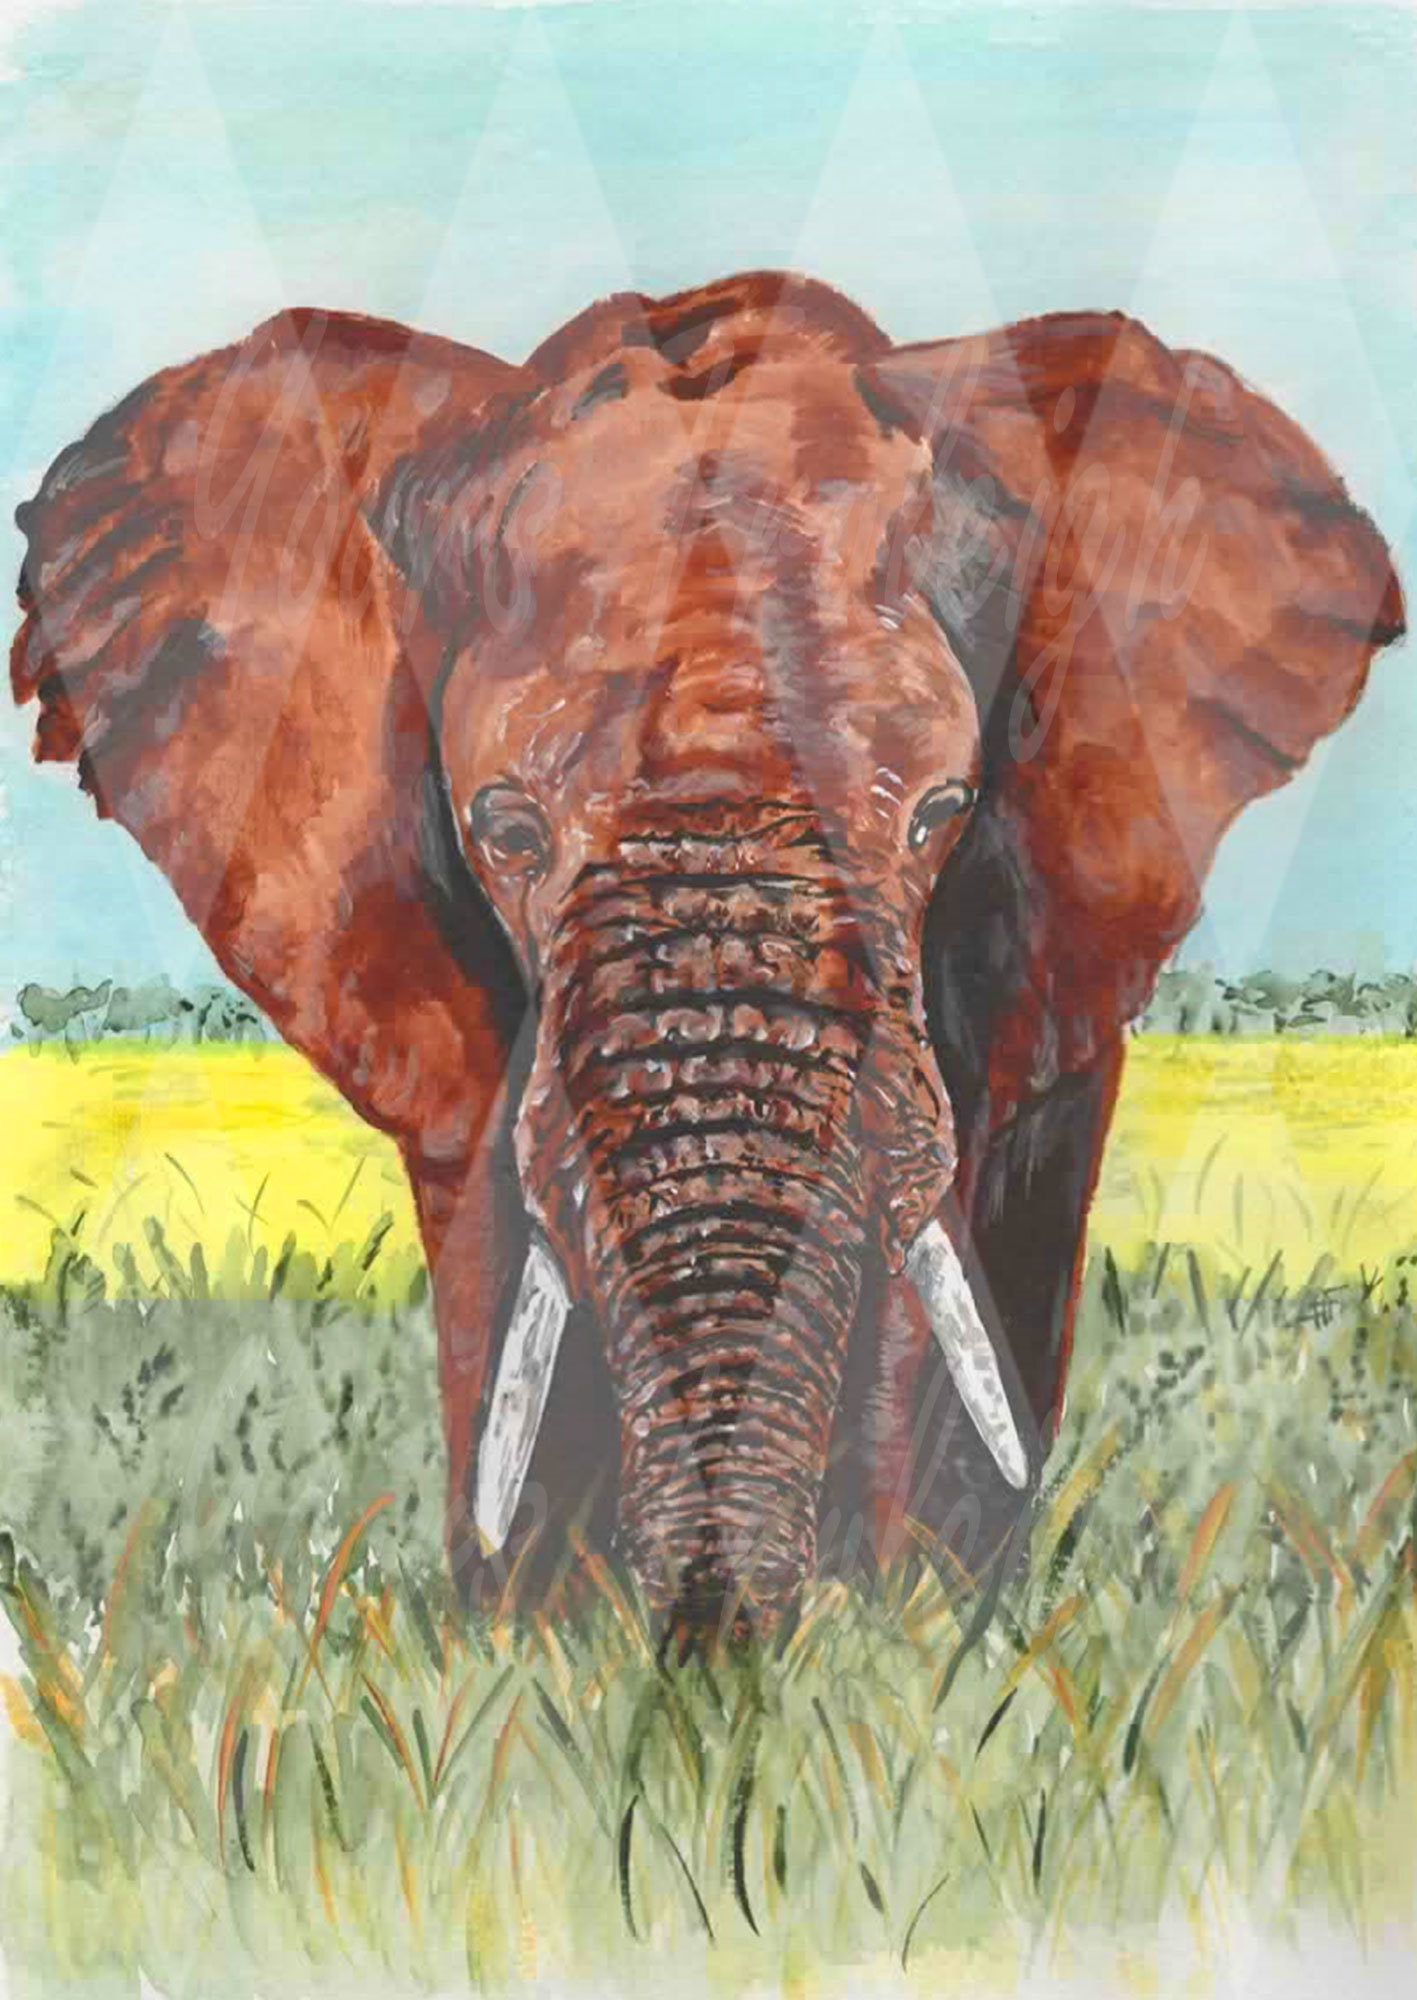 Elephant - Personal Use License